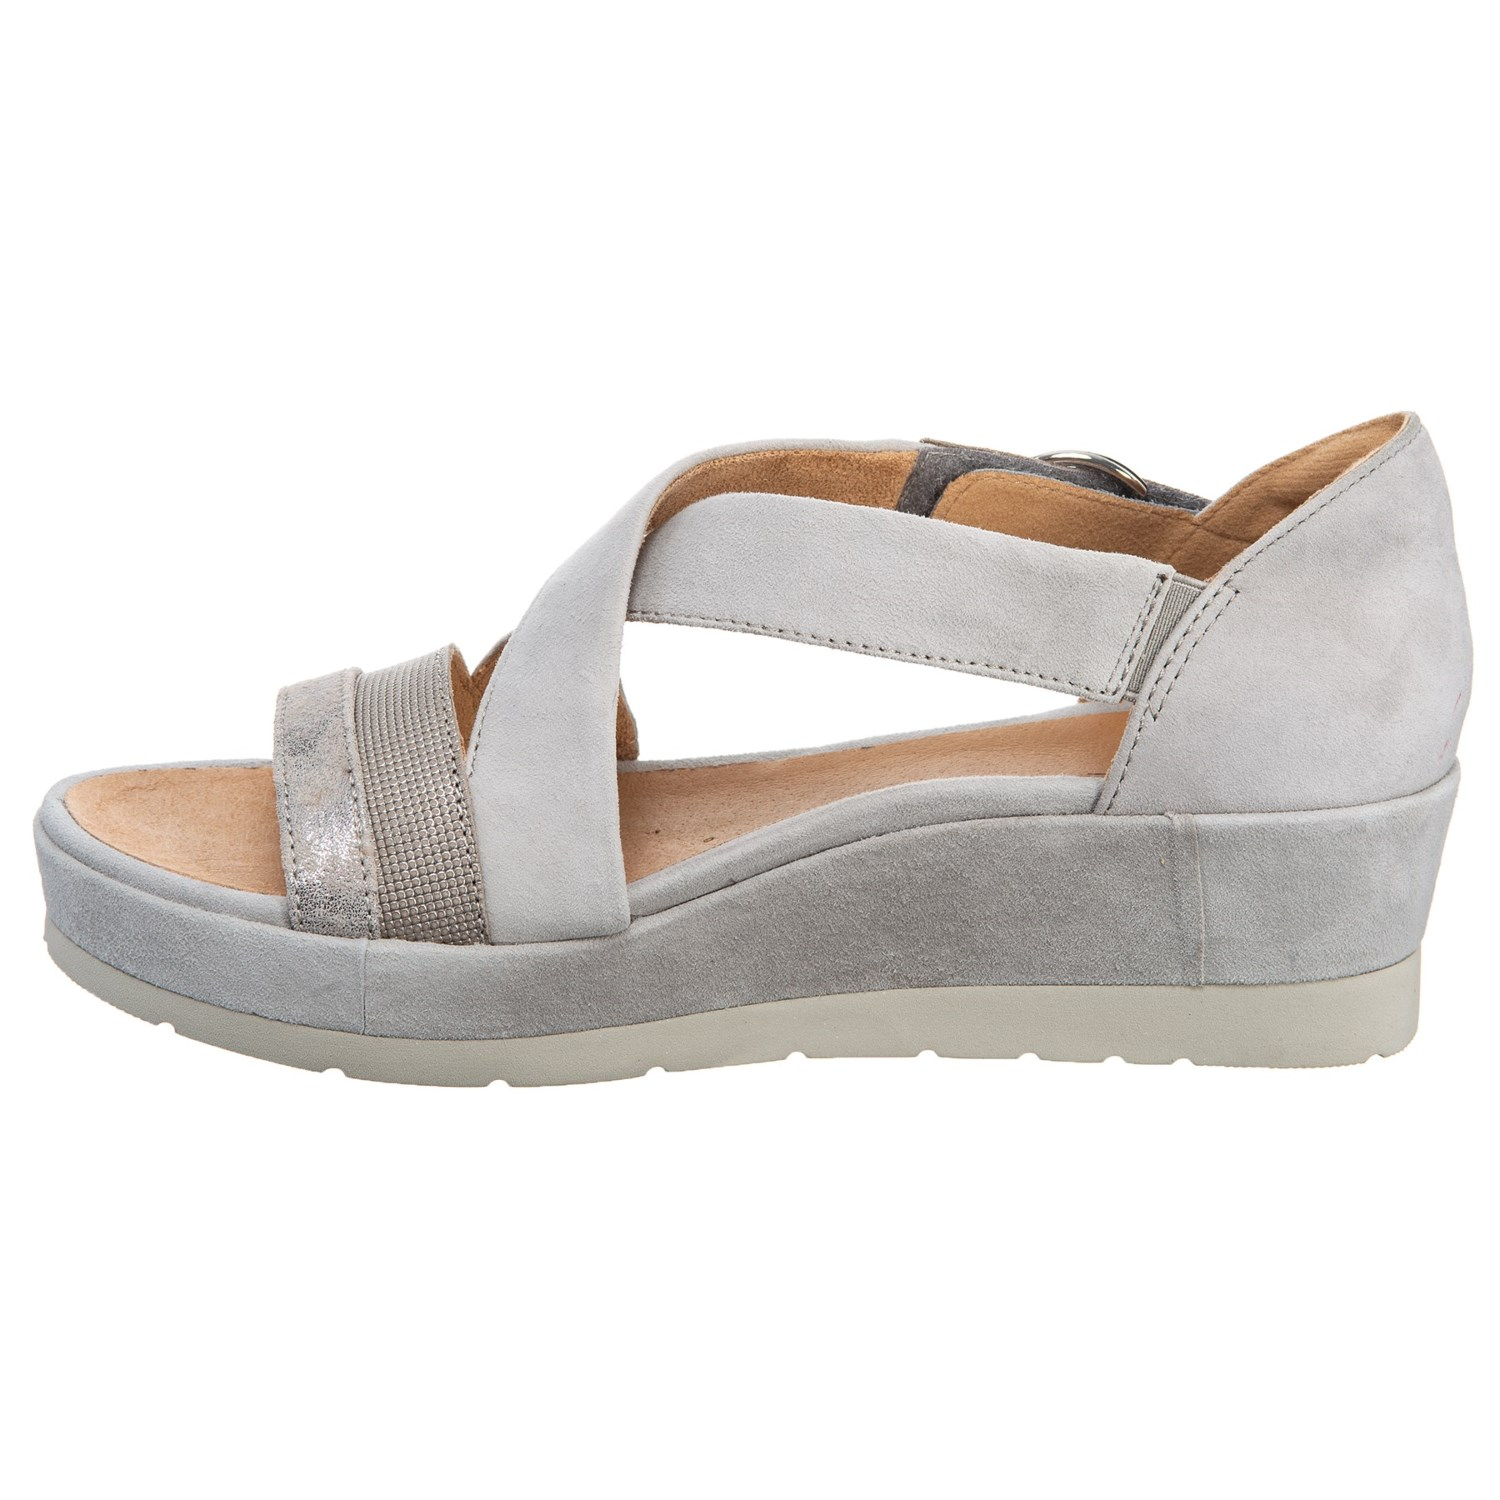 0d4233d715 Earth Hibiscus Wedge Sandals (For Women) - Save 25%